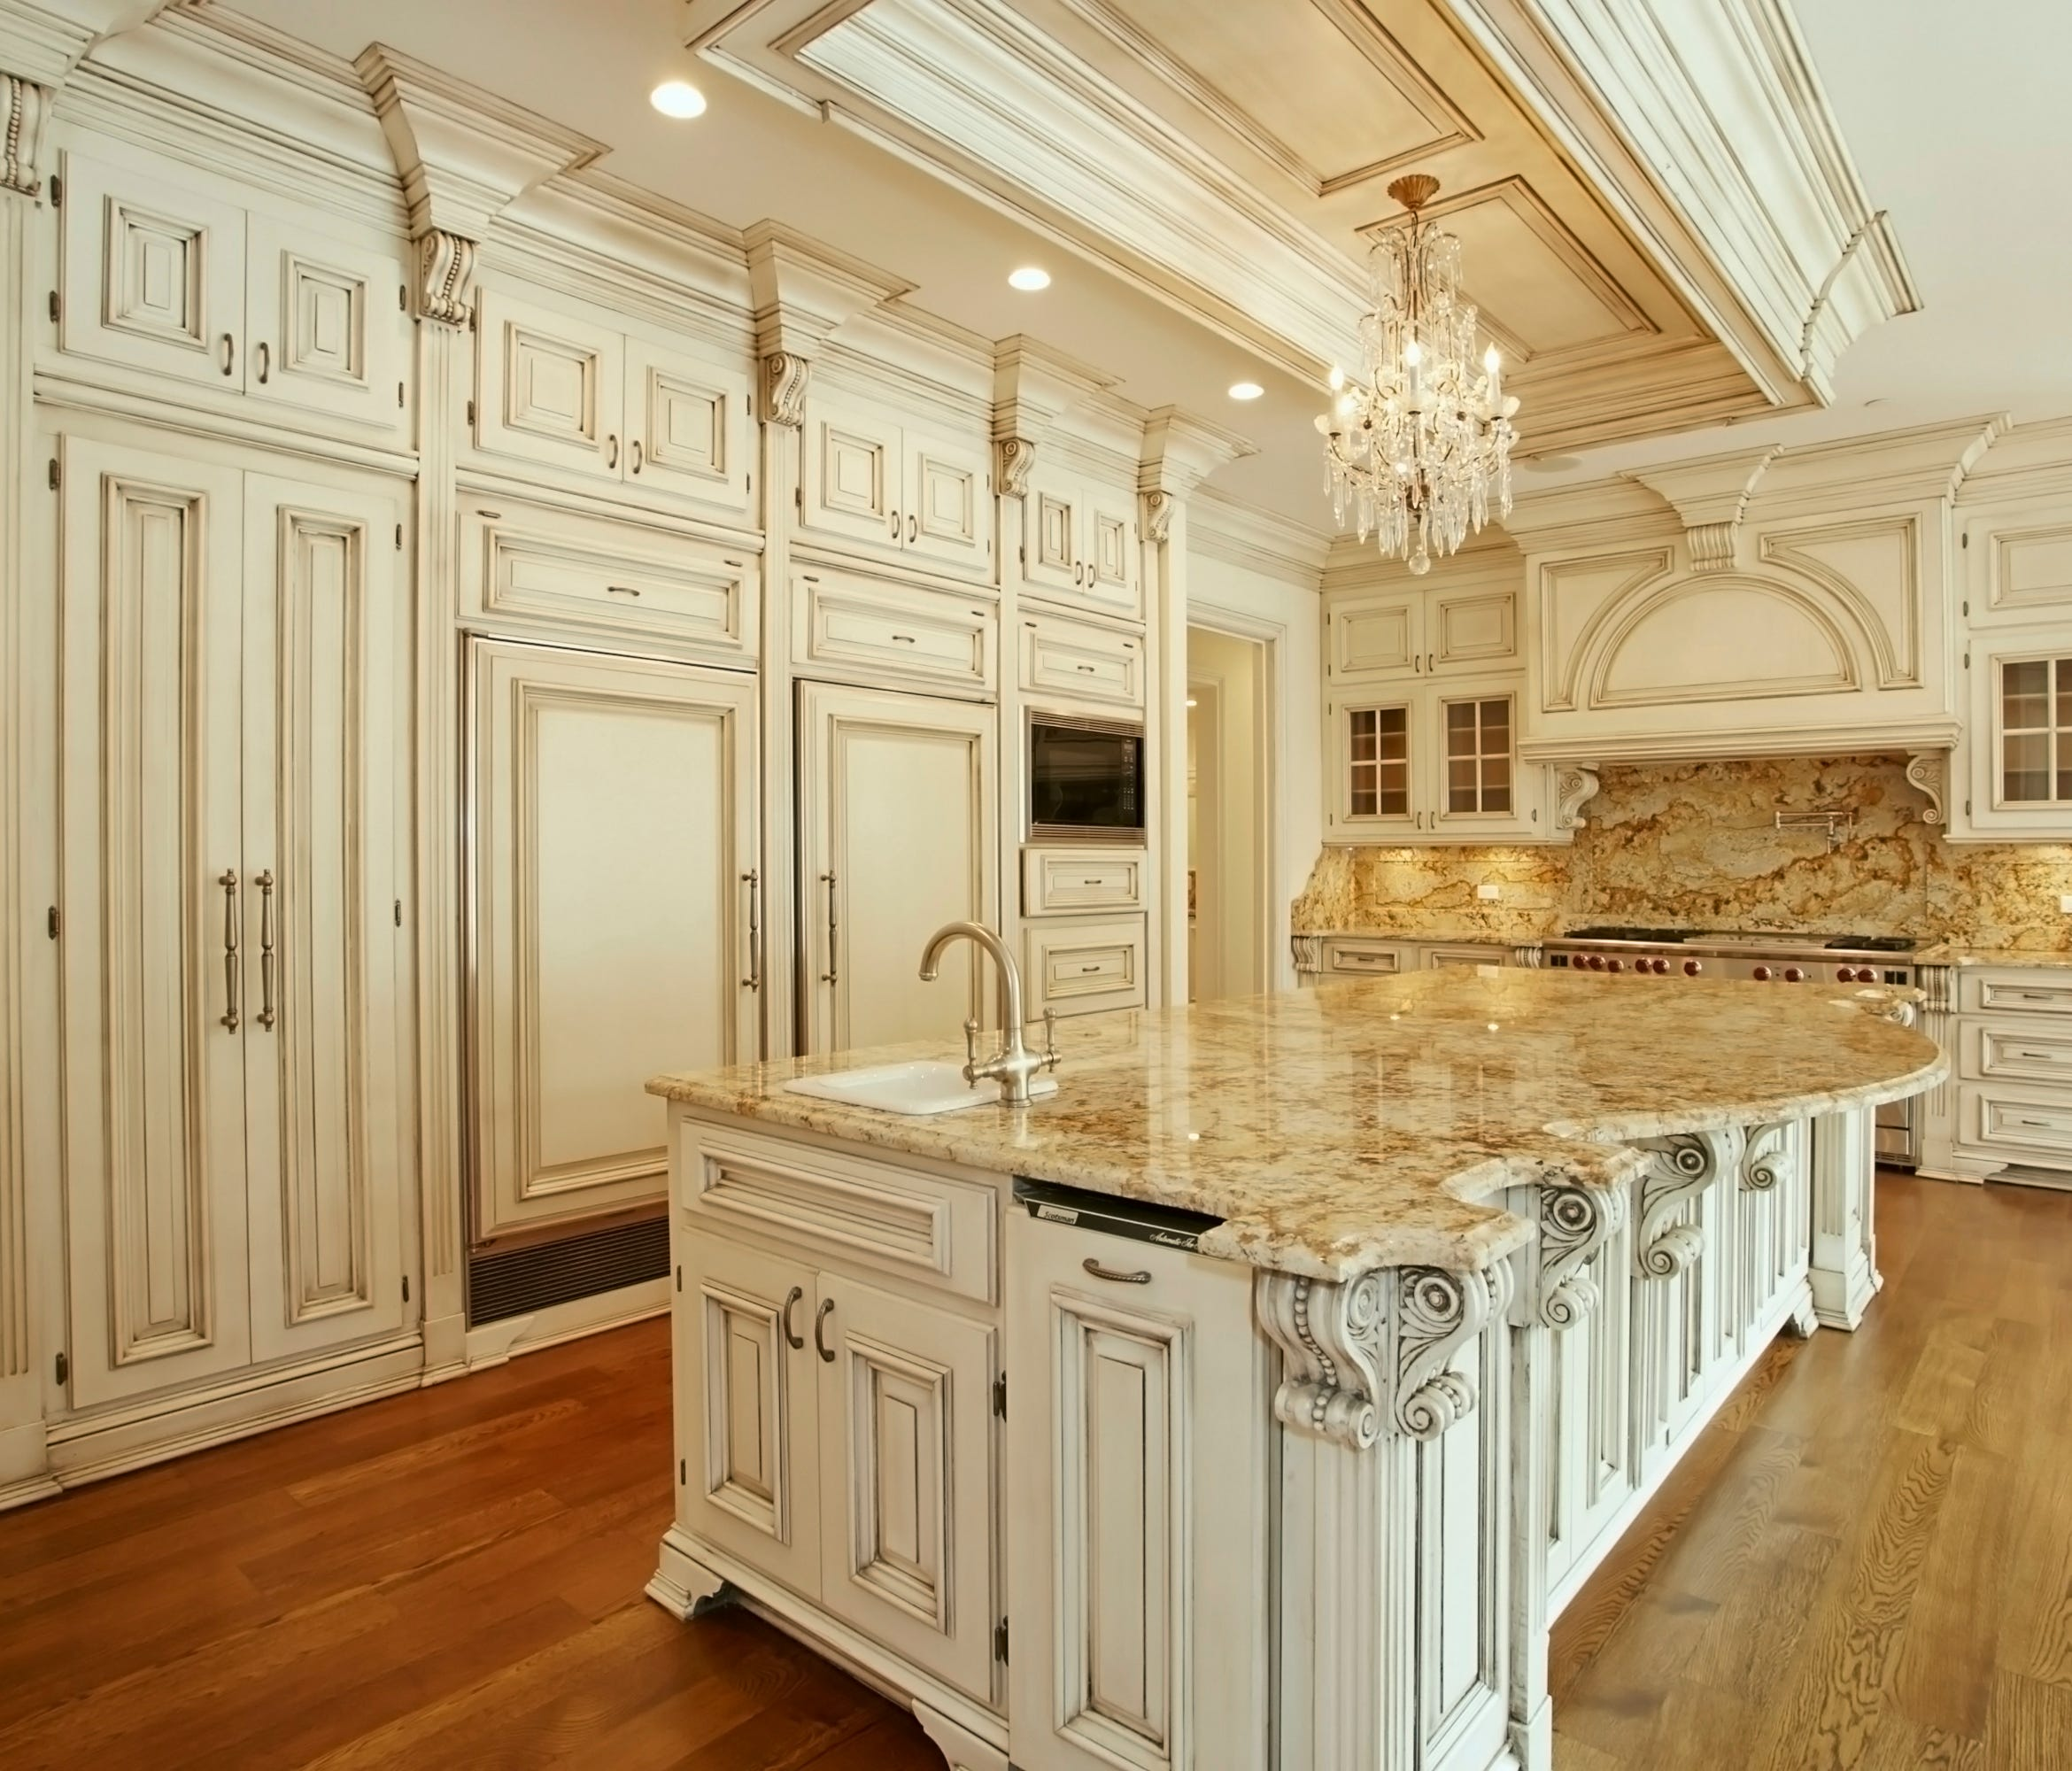 Mansion Kitchen Pictures: 2 More Local Estates To Be Sold At Auction